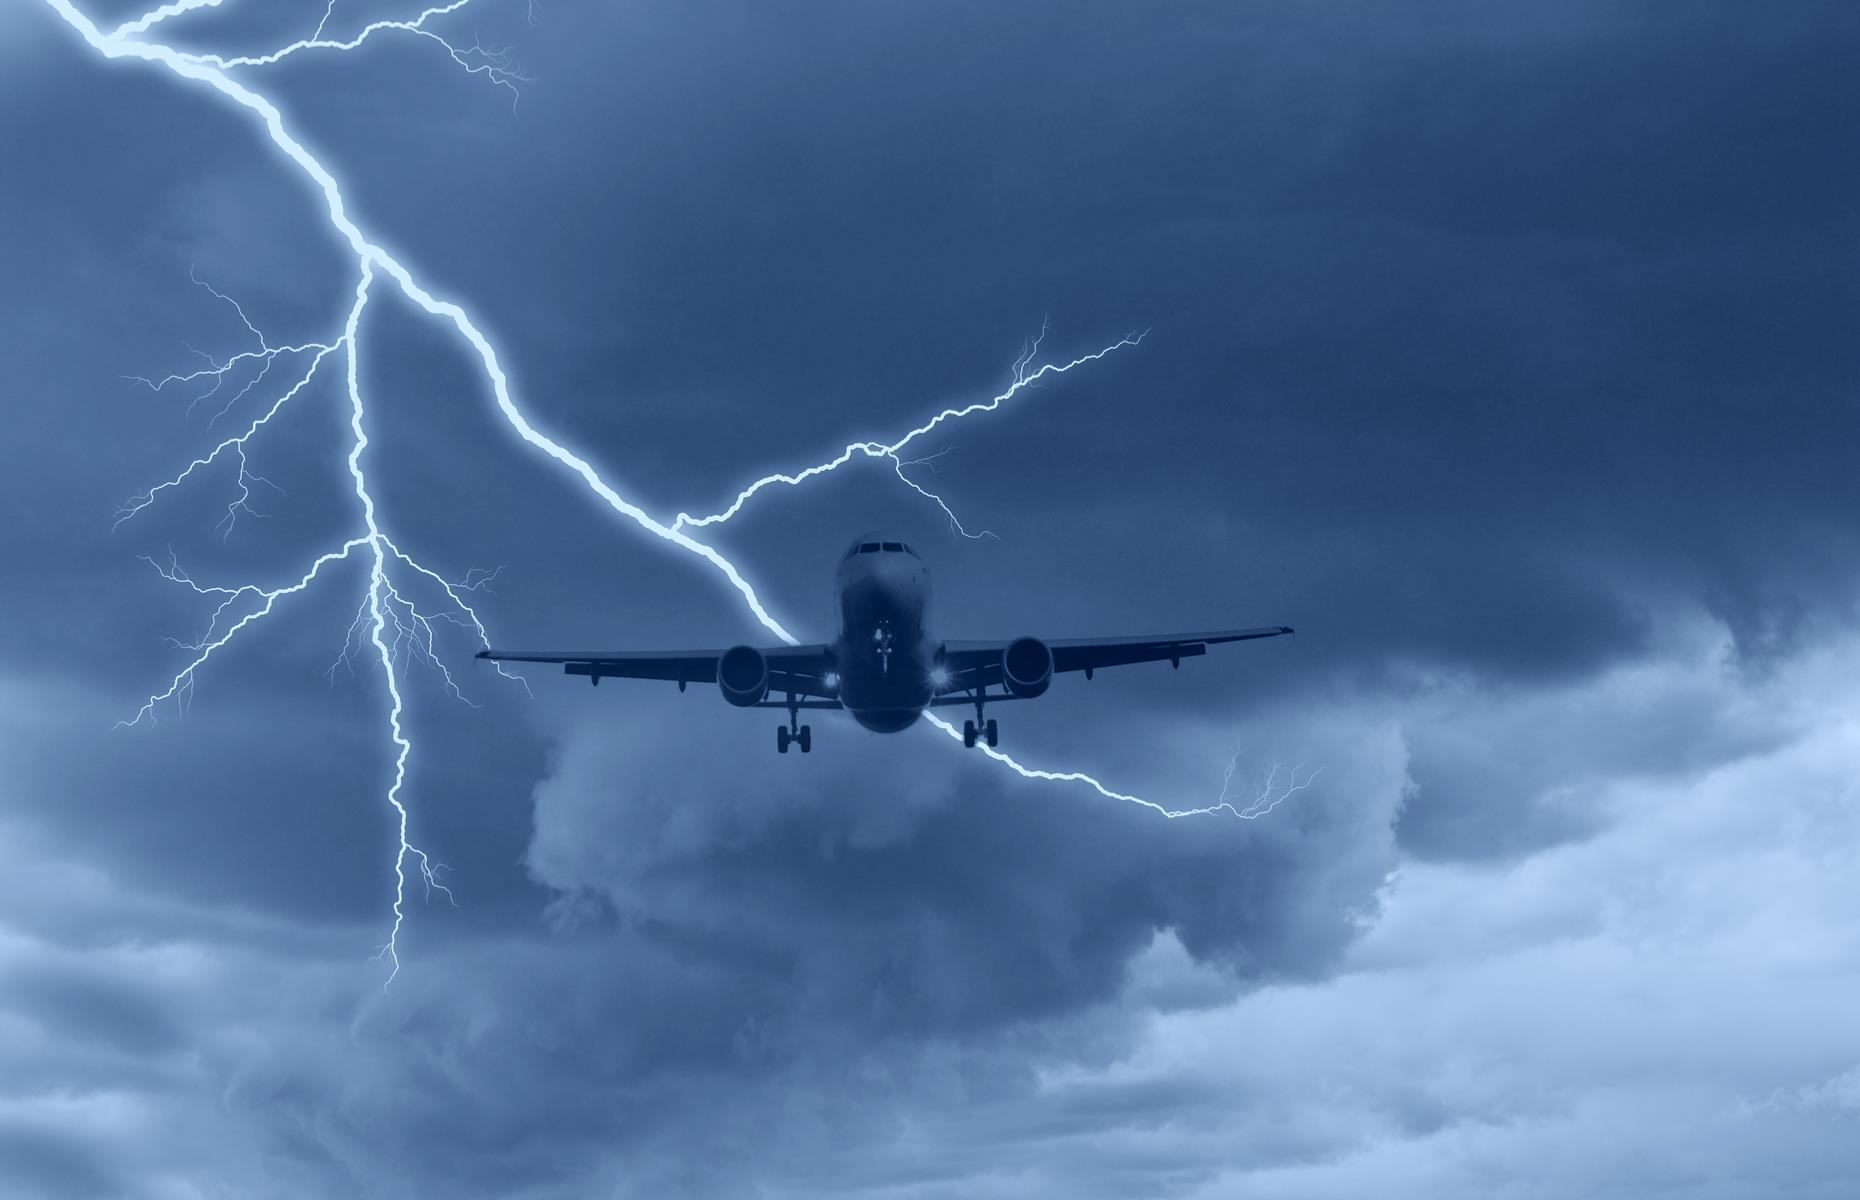 """Slide 26 of 63: """"Typically, a bolt will hit an extremity, such as a wing tip or the nose, and the current will travel through the plane's metal shell before leaving from another point, the tail, for example,"""" explains Jonny. """"Once in a while there's superficial exterior damage or minor injury to the plane's electrical systems, but a strike typically leaves little or no evidence. In fact, you might not even notice it."""""""